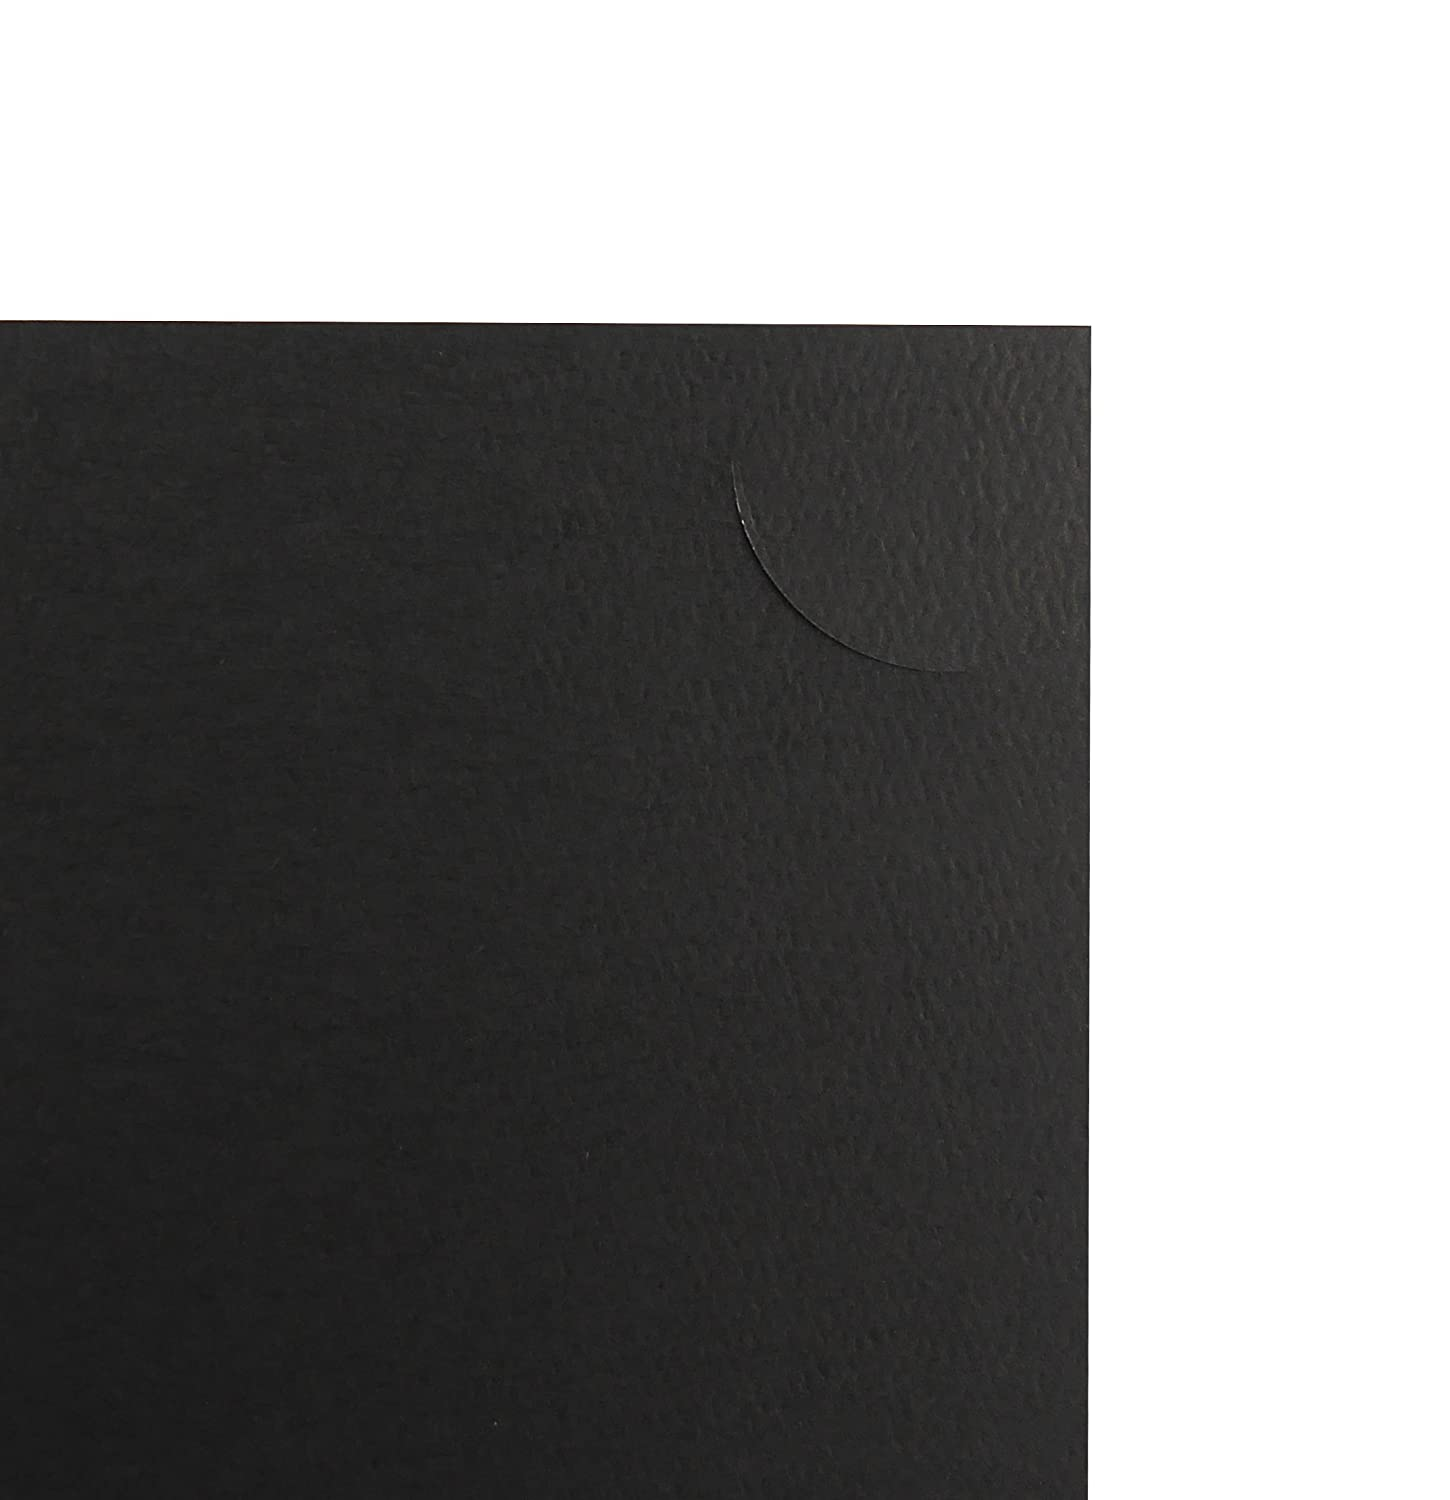 Pack of 10 PF061 Black with Gold Lining Golden State Art Cardboard Photo Folder For a 8.5x11 Photo